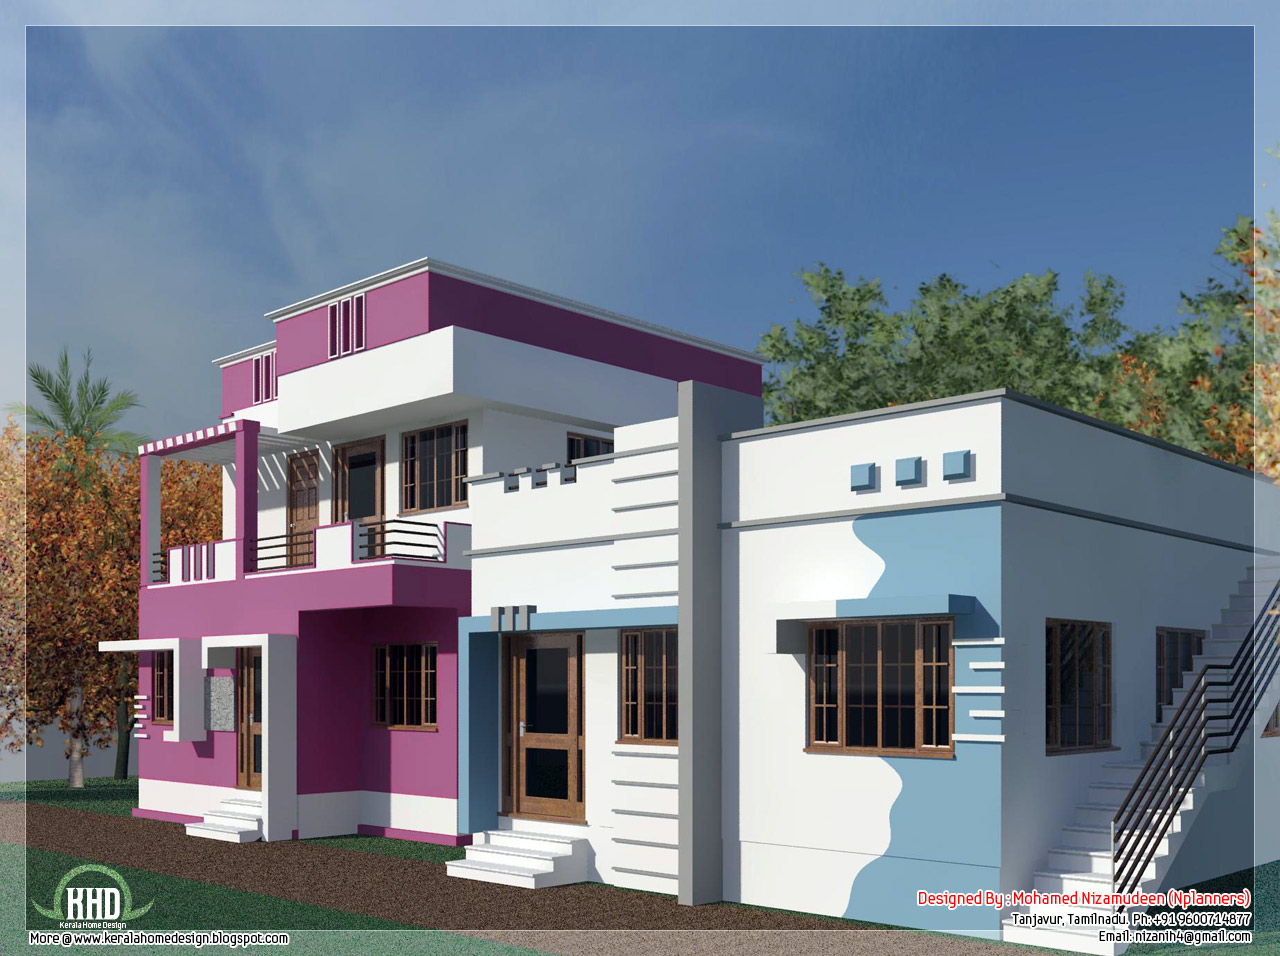 tamilnadu model home design in 3000 kerala home